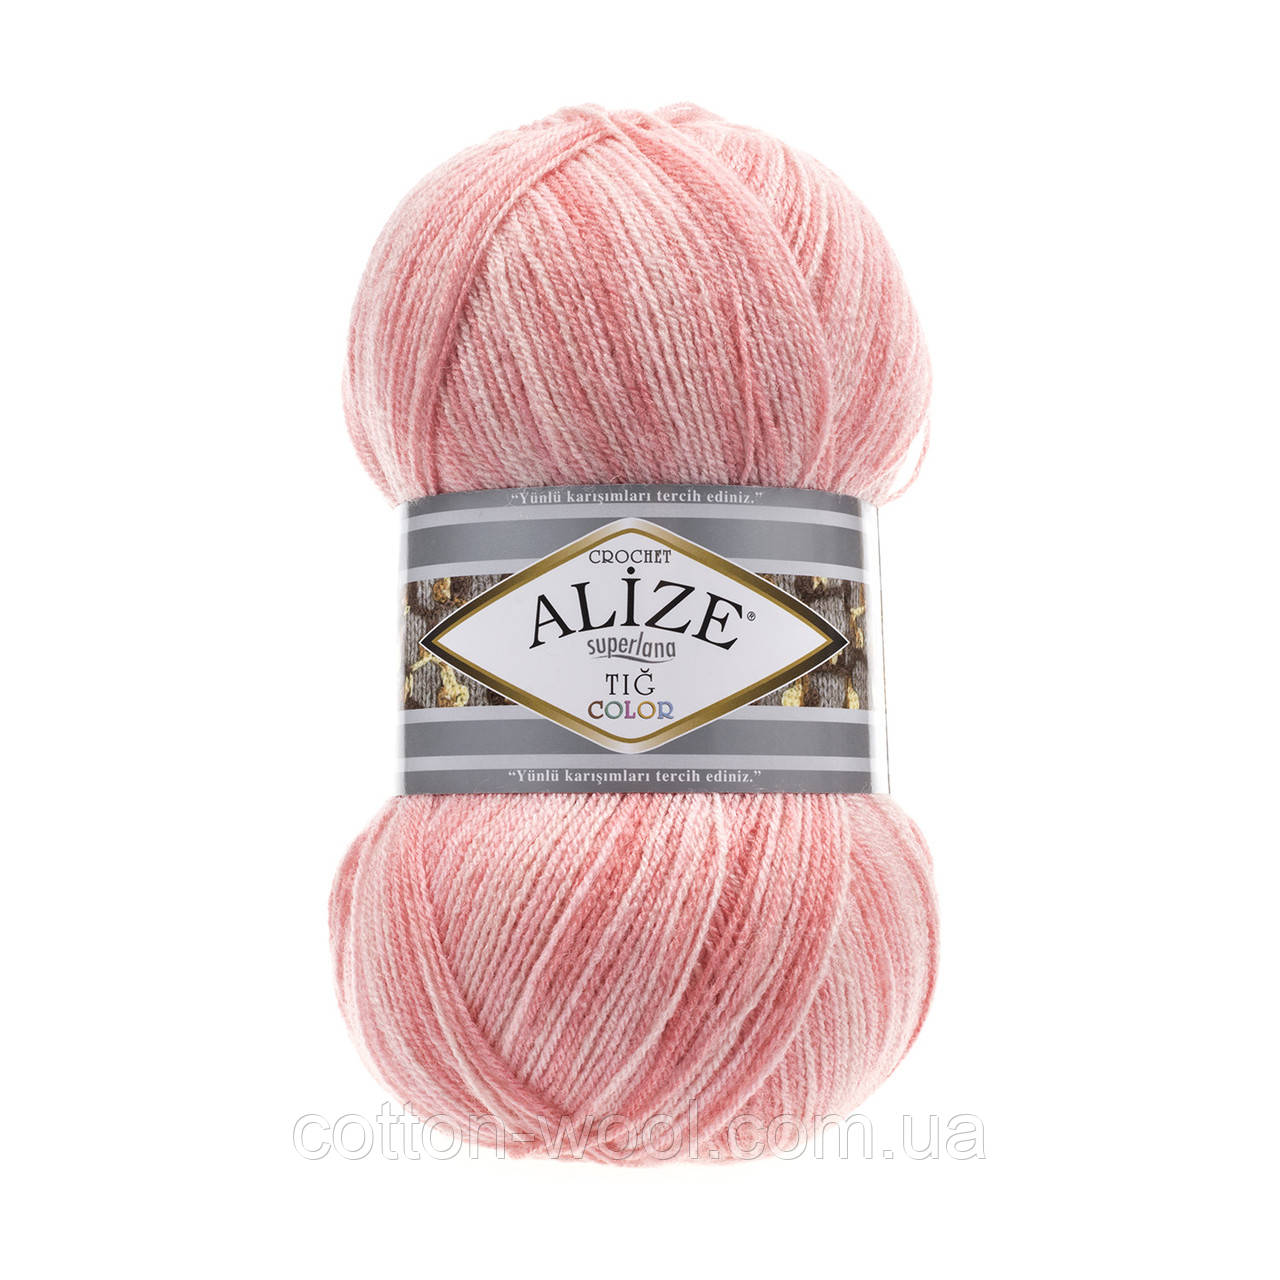 Alize SUPERLANA TIĞ COLOR (25% вовна, 75% акріл) 51845